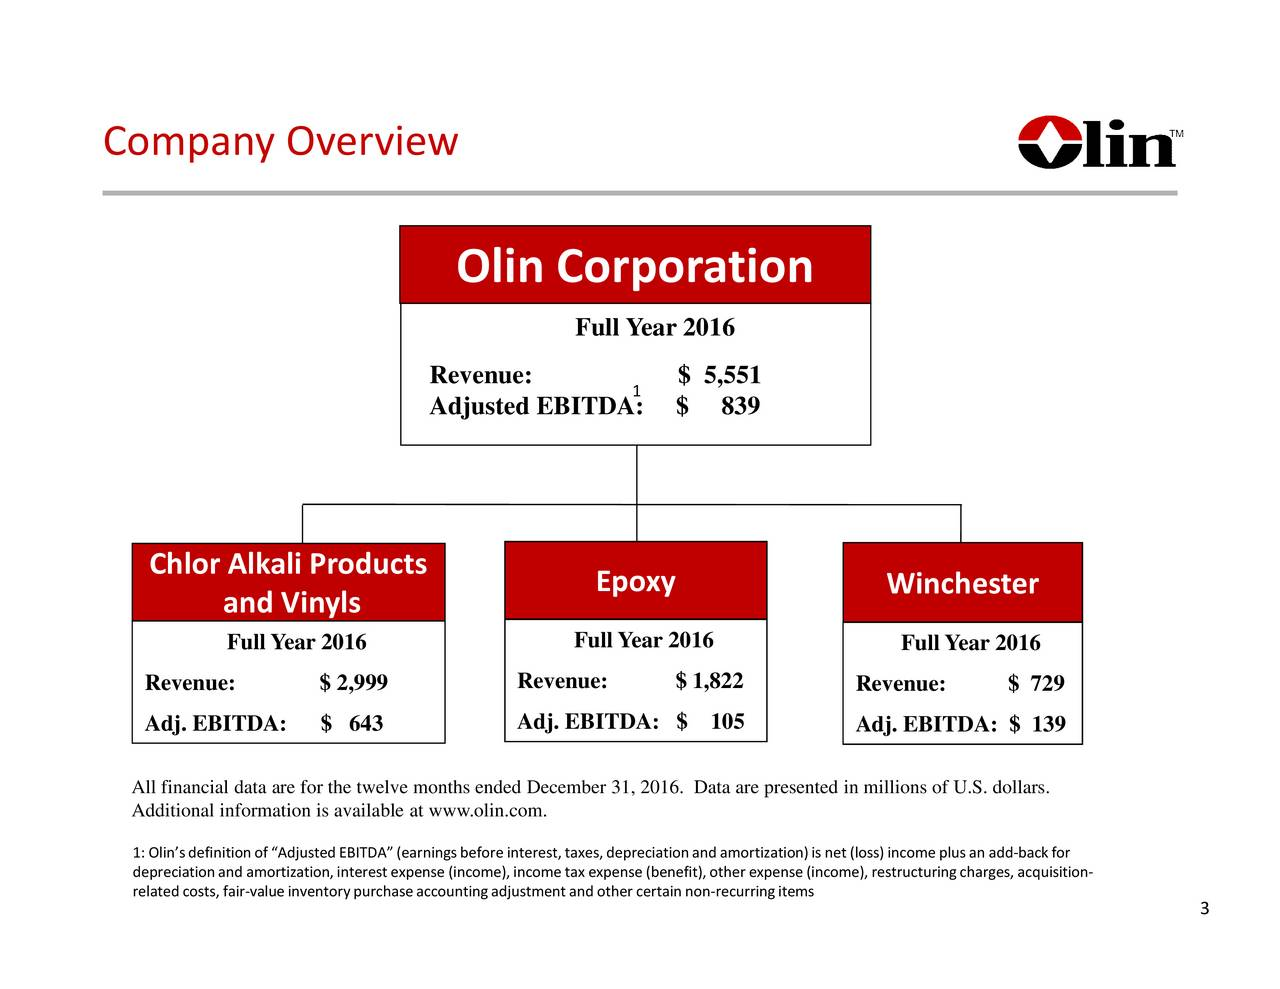 Olin Olin Corporation Full Year 2016 Revenue: 1 $ 5,551 Adjusted EBITDA: $ 839 Chlor Alkali Products Epoxy Winchester and Vinyls Full Year 2016 Full Year 2016 Full Year 2016 Revenue: $ 1,822 Revenue: $ 2,999 Revenue: $ 729 Adj. EBITDA: $ 643 Adj. EBITDA: $ 105 Adj. EBITDA: $ 139 All financial data are for the twelve months ended December 31, 2016. Data are presented in millions of U.S. dollars. Additional information is available at www.olin.com. 1: Olinsdefinition of Adjusted EBITDA (earnings before interest, taxes, depreciation and amortization)is net (loss) income plus an add-back for related costs, fair-value inventorypurchase accounting adjustment and other certain non-recurring itemsncome), restructuringcharges, acquisition- 3